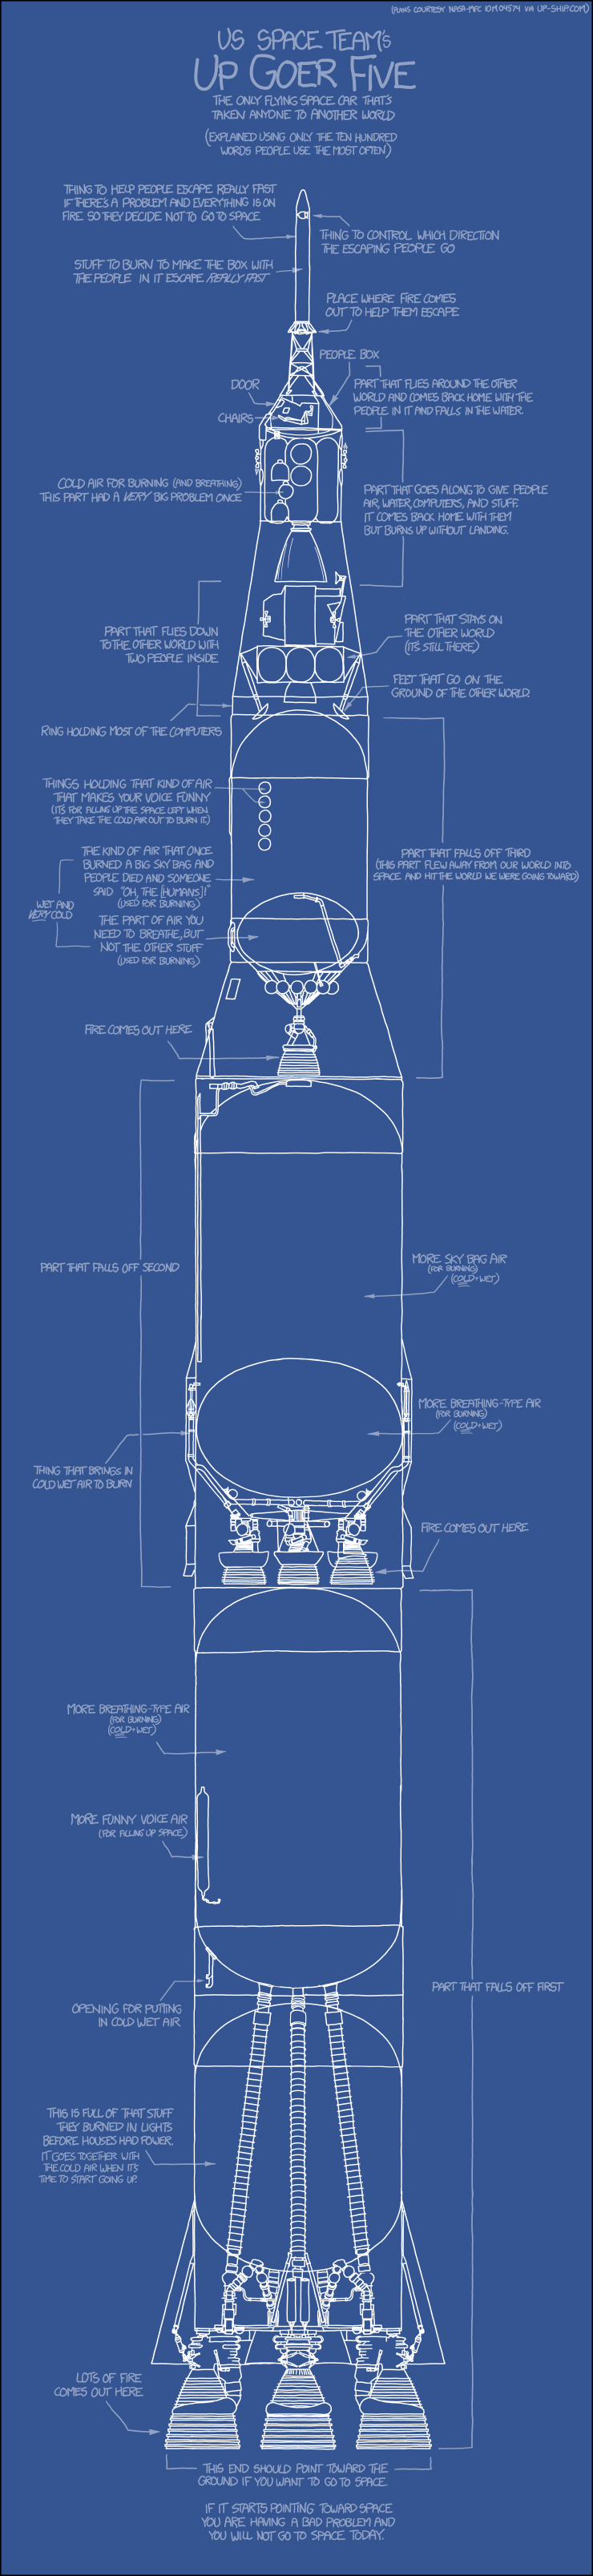 Xkcd Up Goer Five Blueprint Engine Diagram